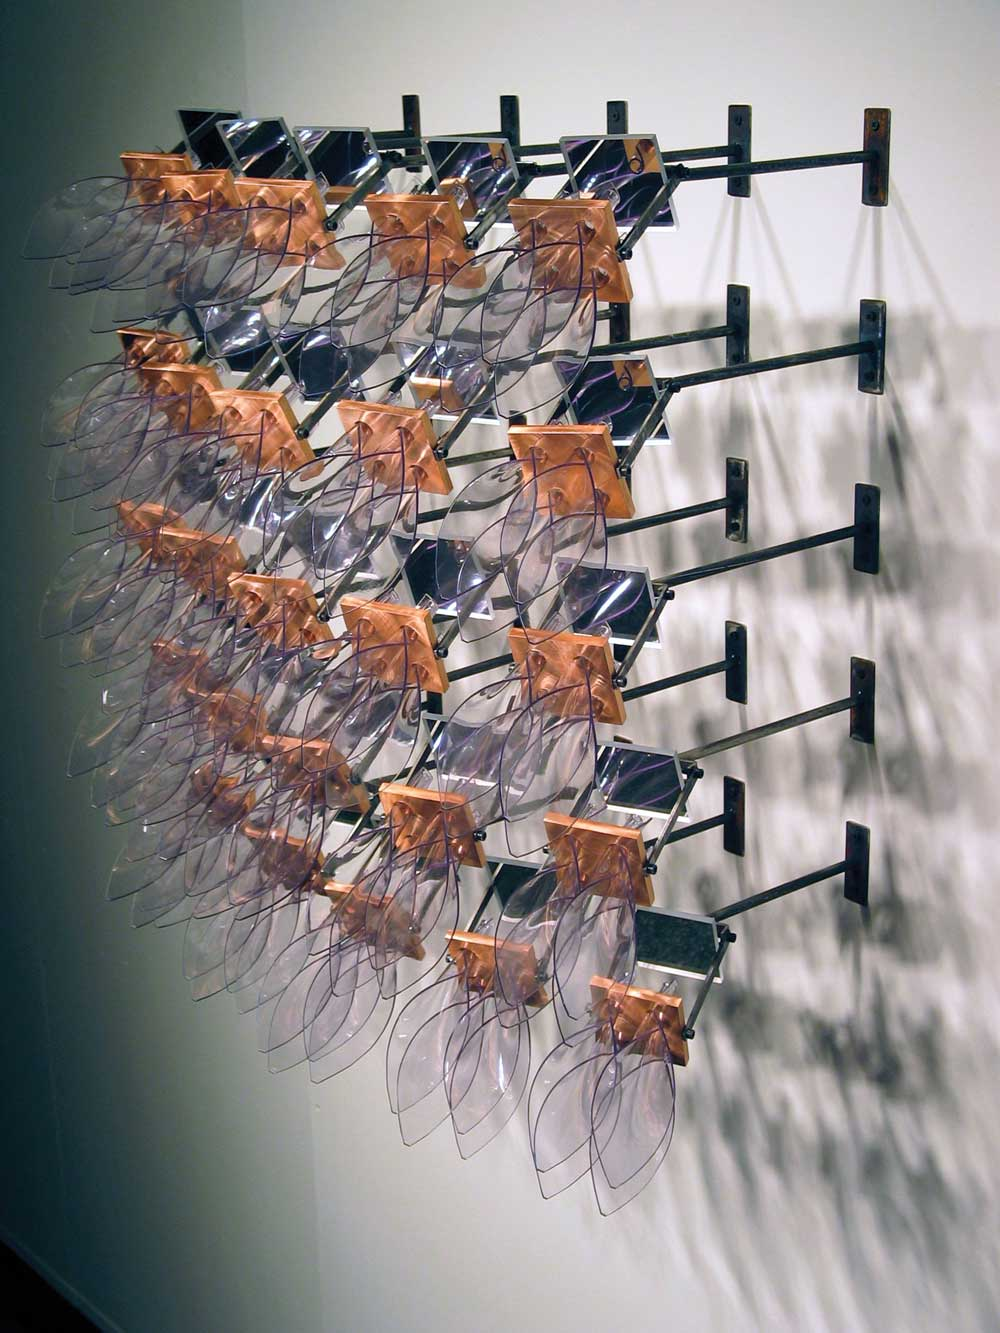 Rick Herzog, As Simple as a Flower, 2005, vinyl, copper, acrylic mirrors, steel.